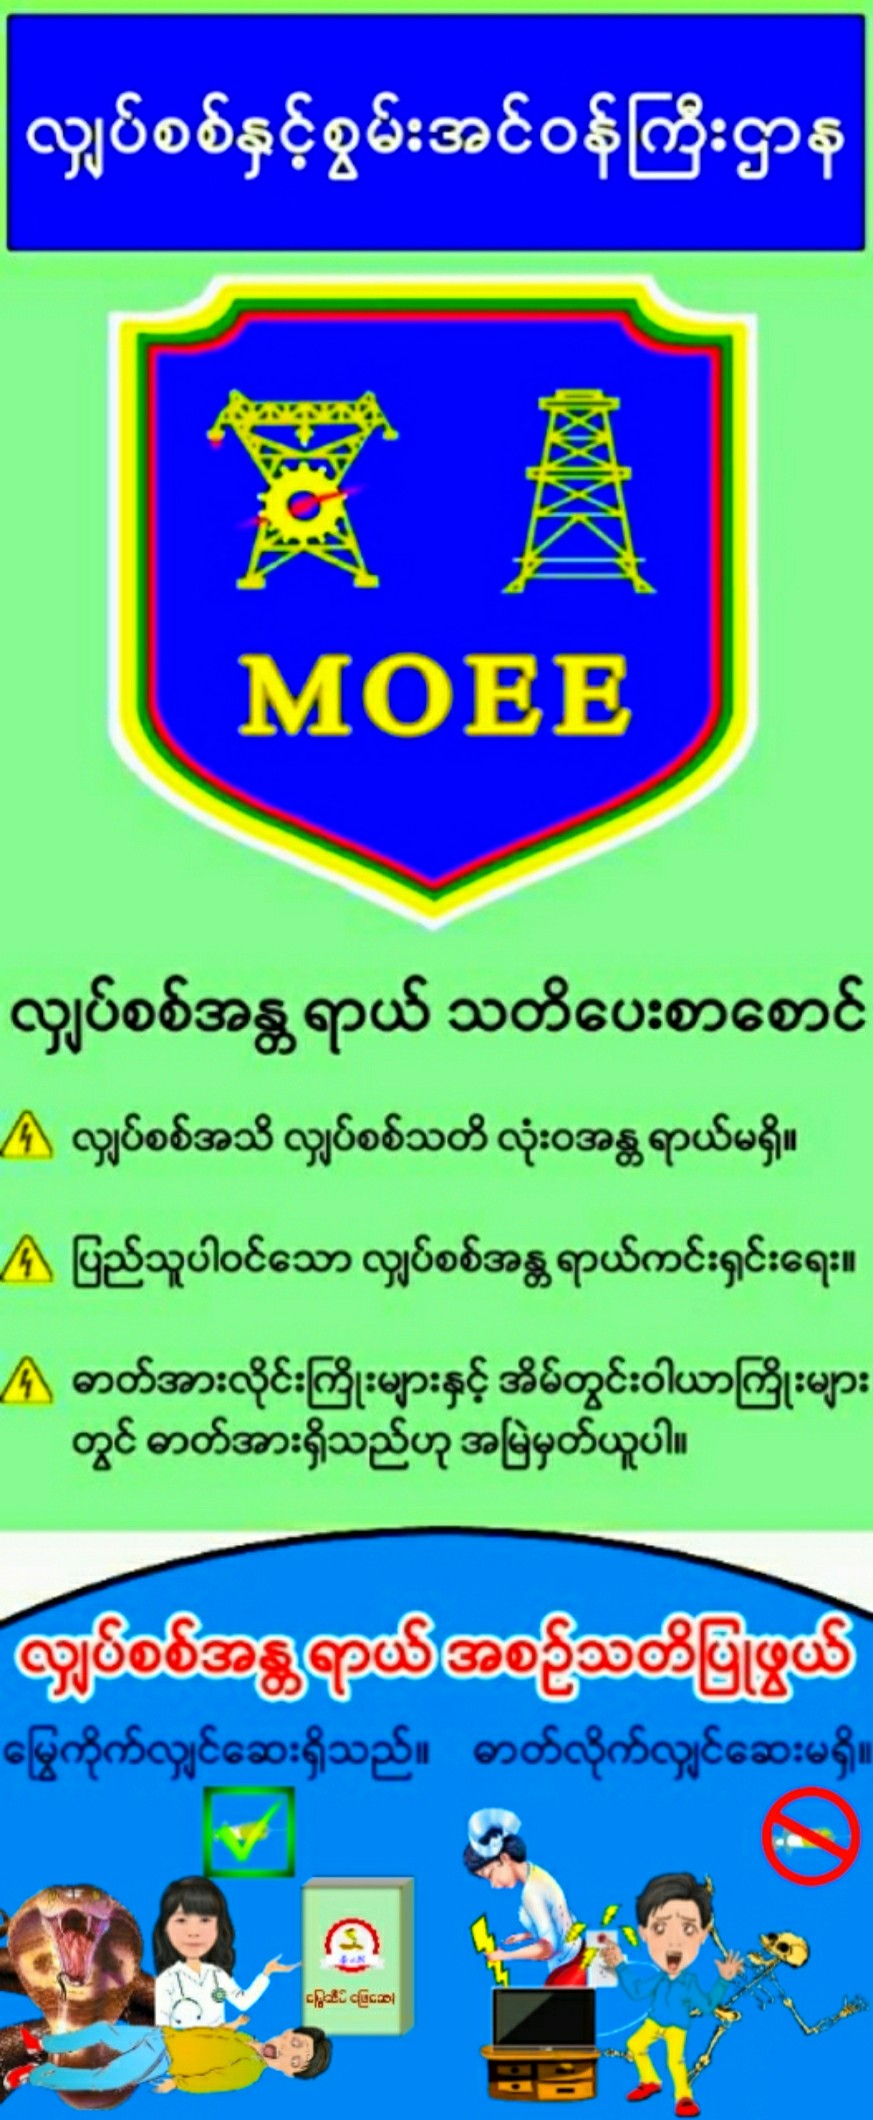 https://moee.gov.mm/mm/upload_img/163.jpg